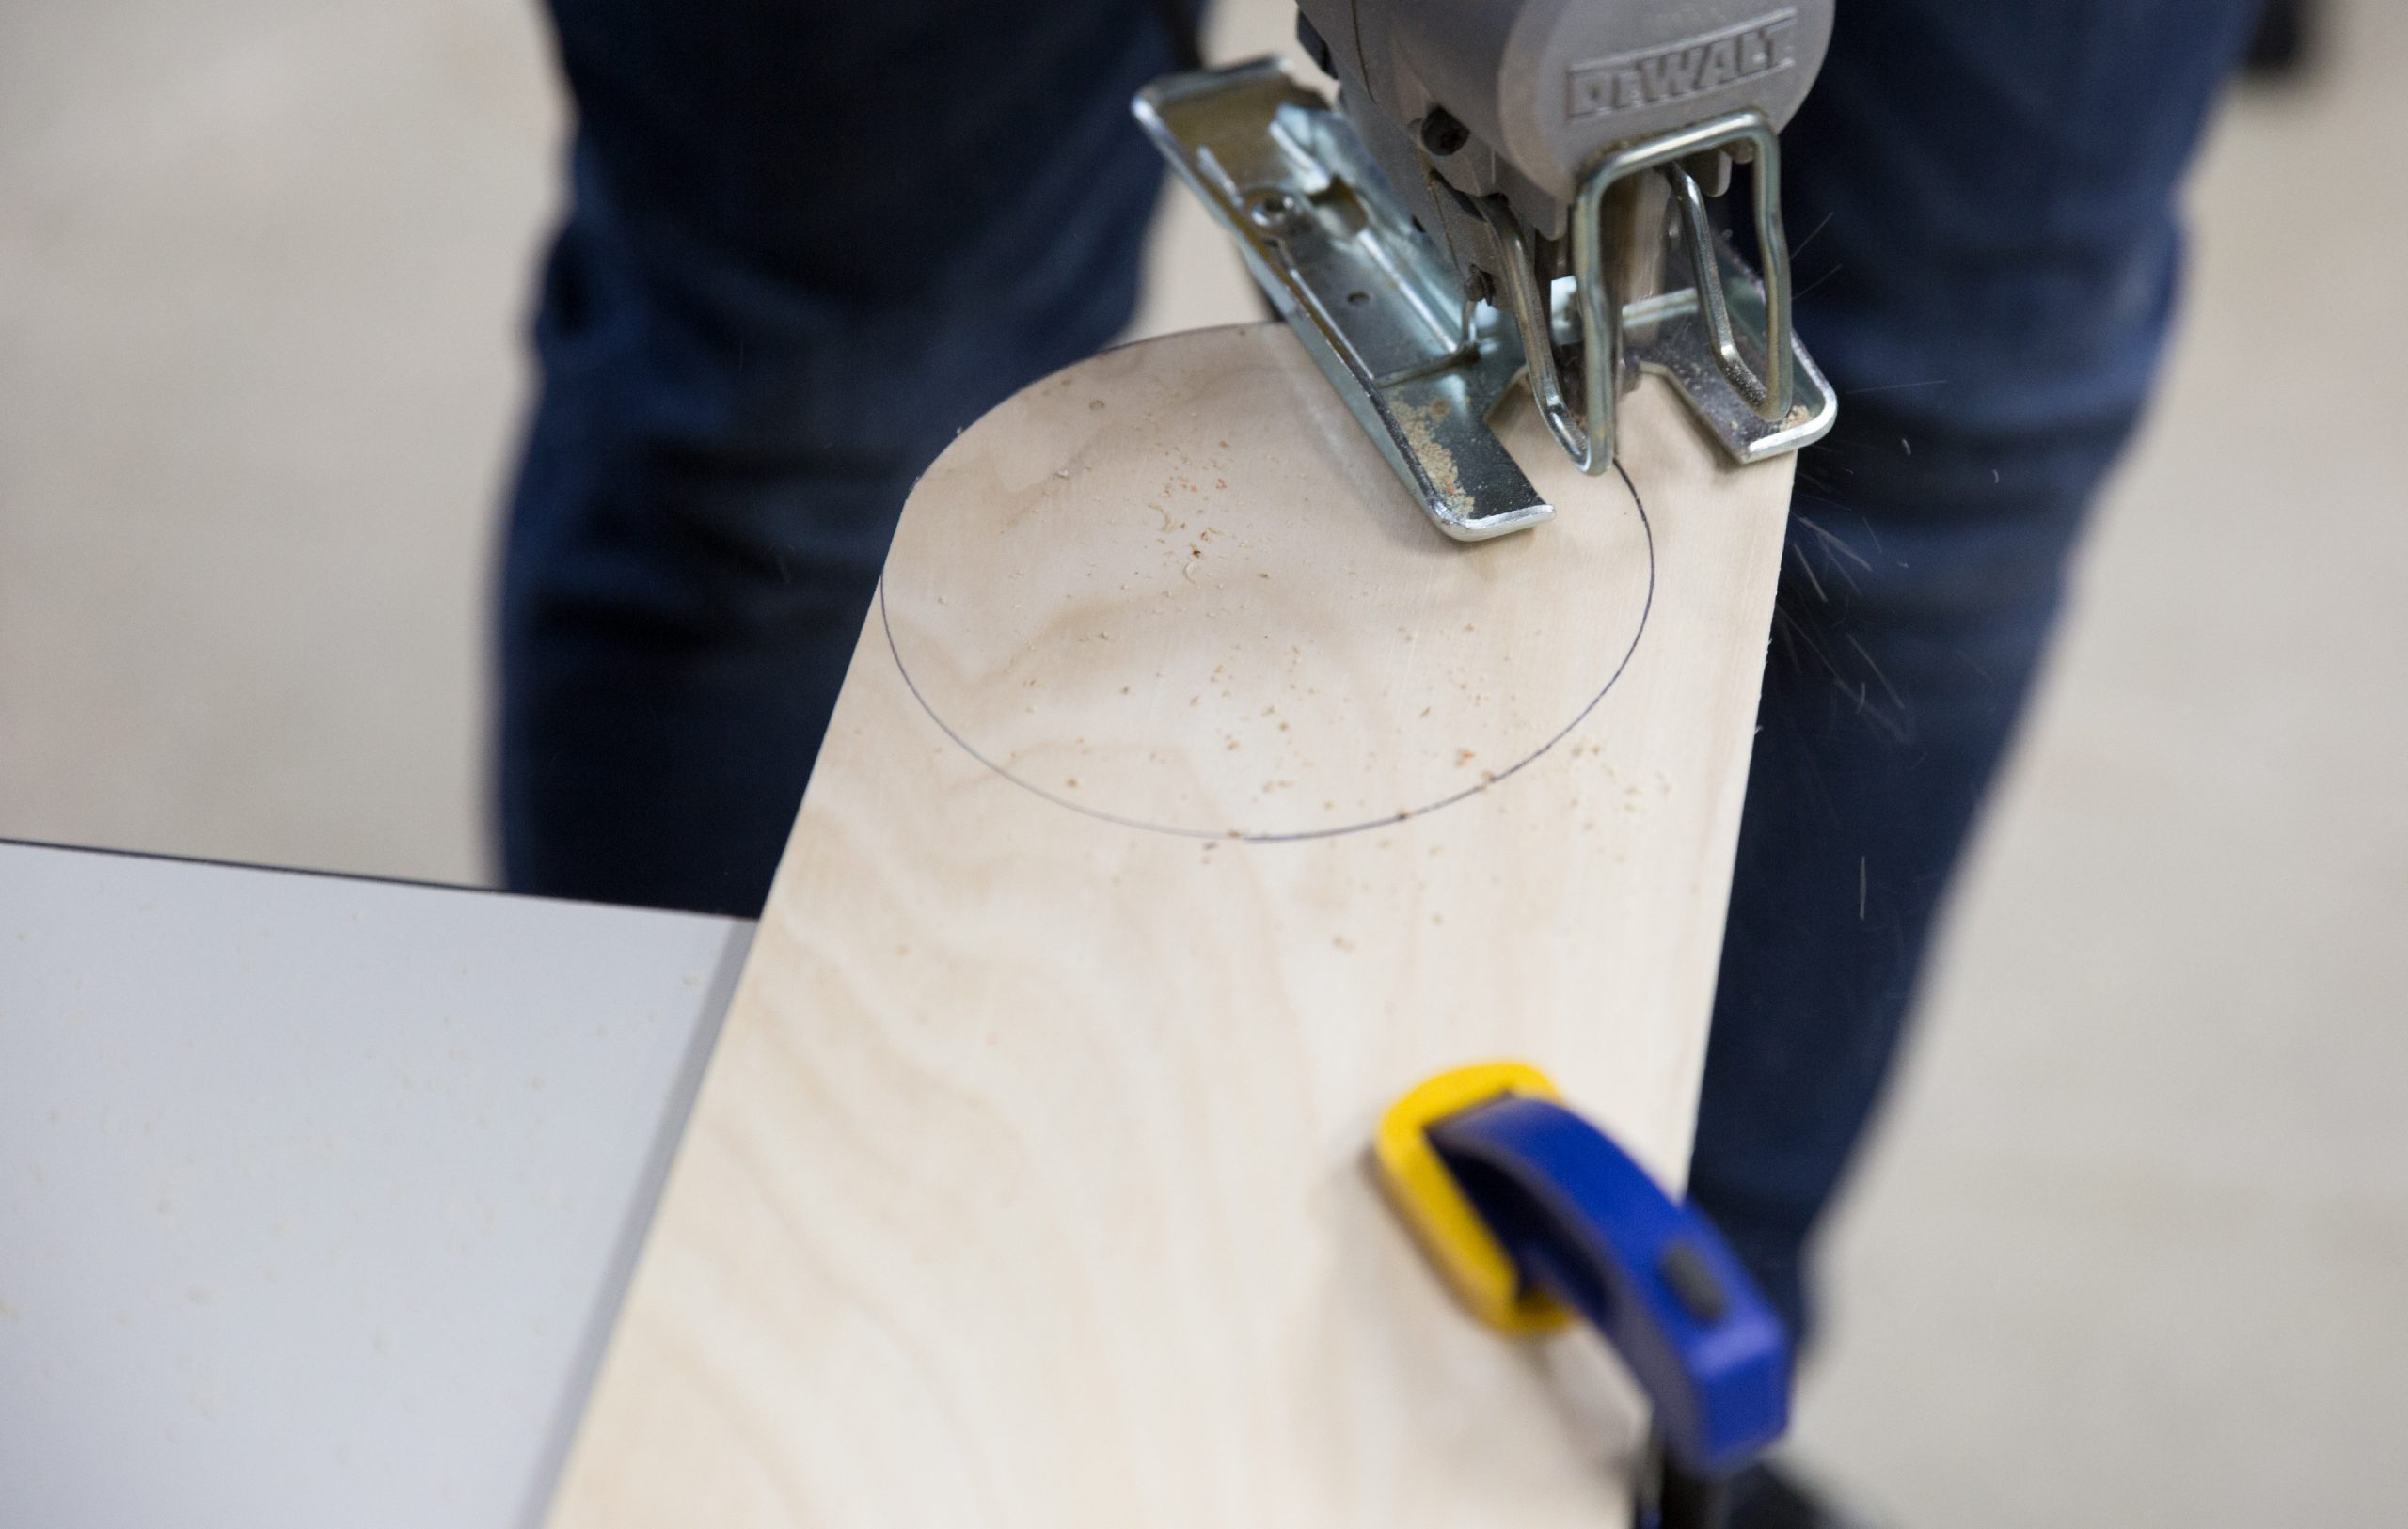 Person cutting the circle from the piece of wood.